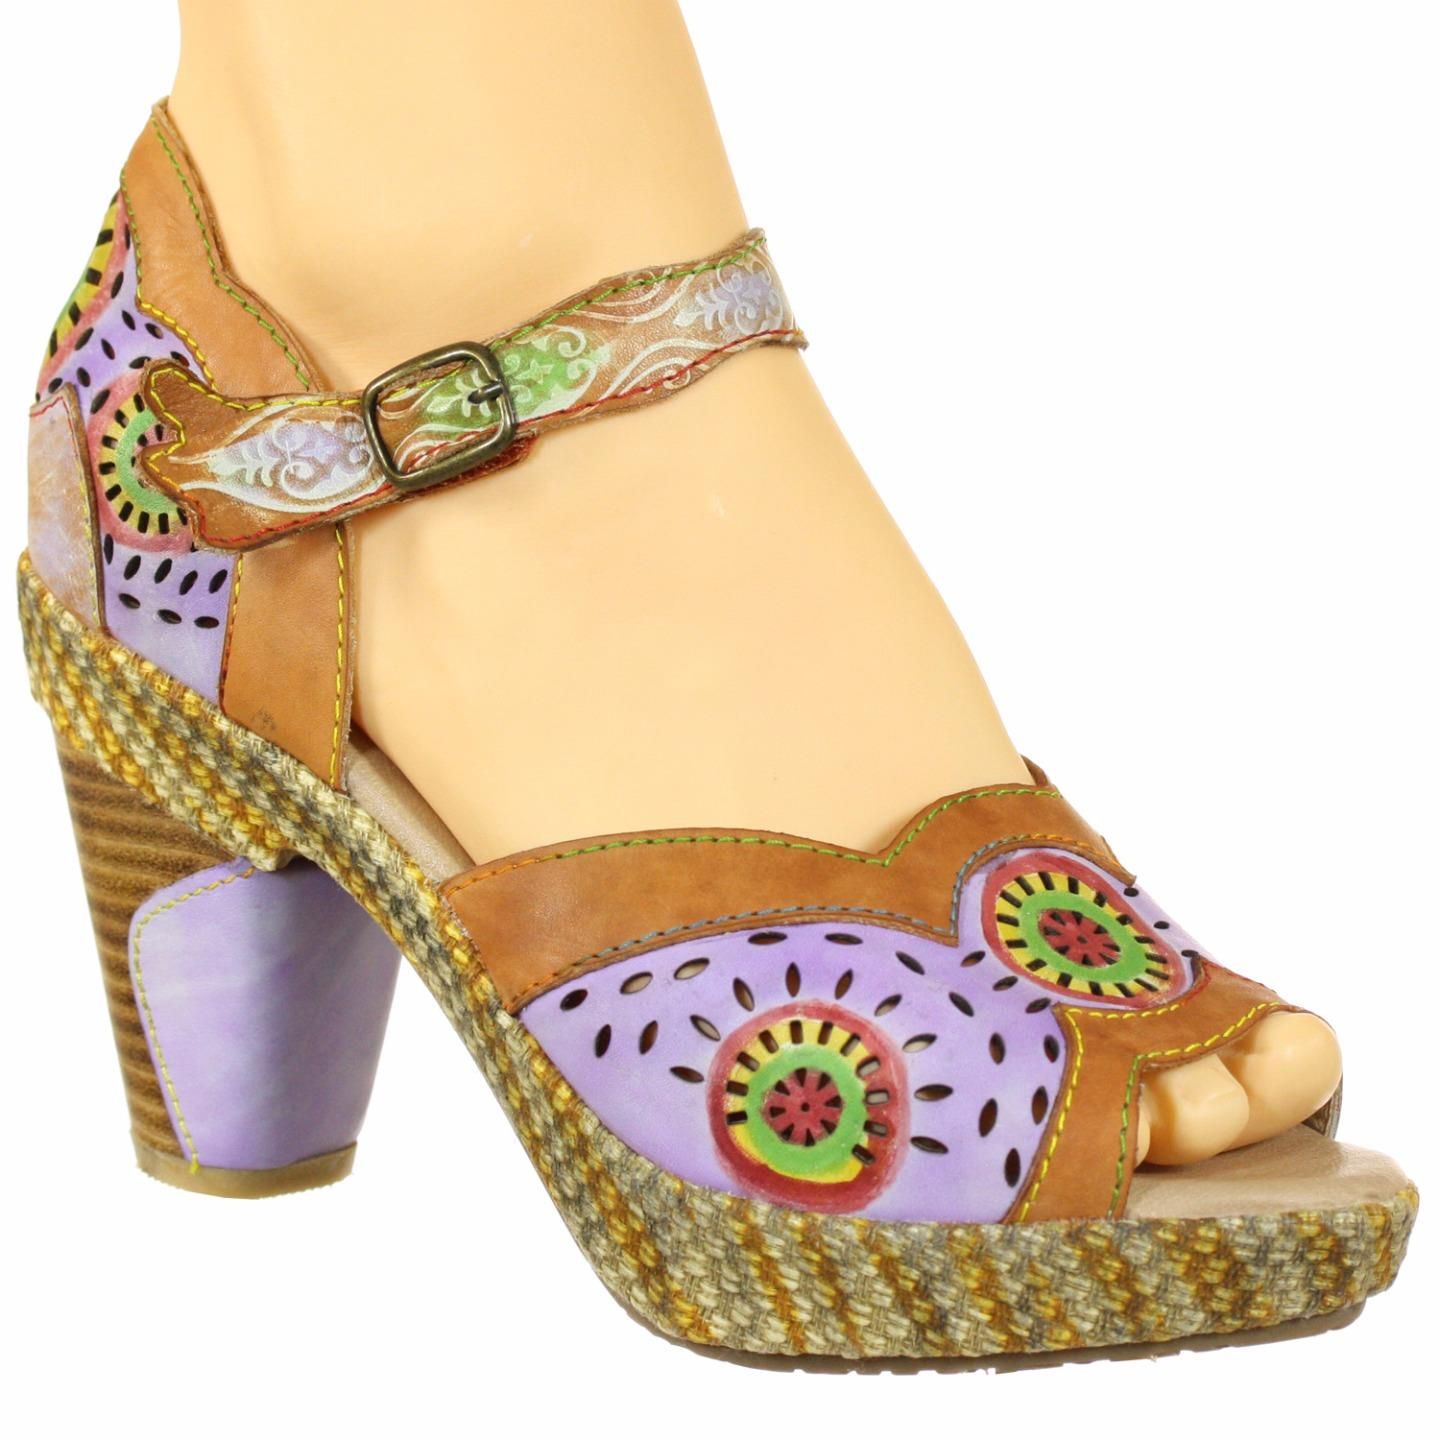 Bravada Spring Step L'Artiste Collection Women's Sandals Camel Multi EU 37 US 7 by Spring Step